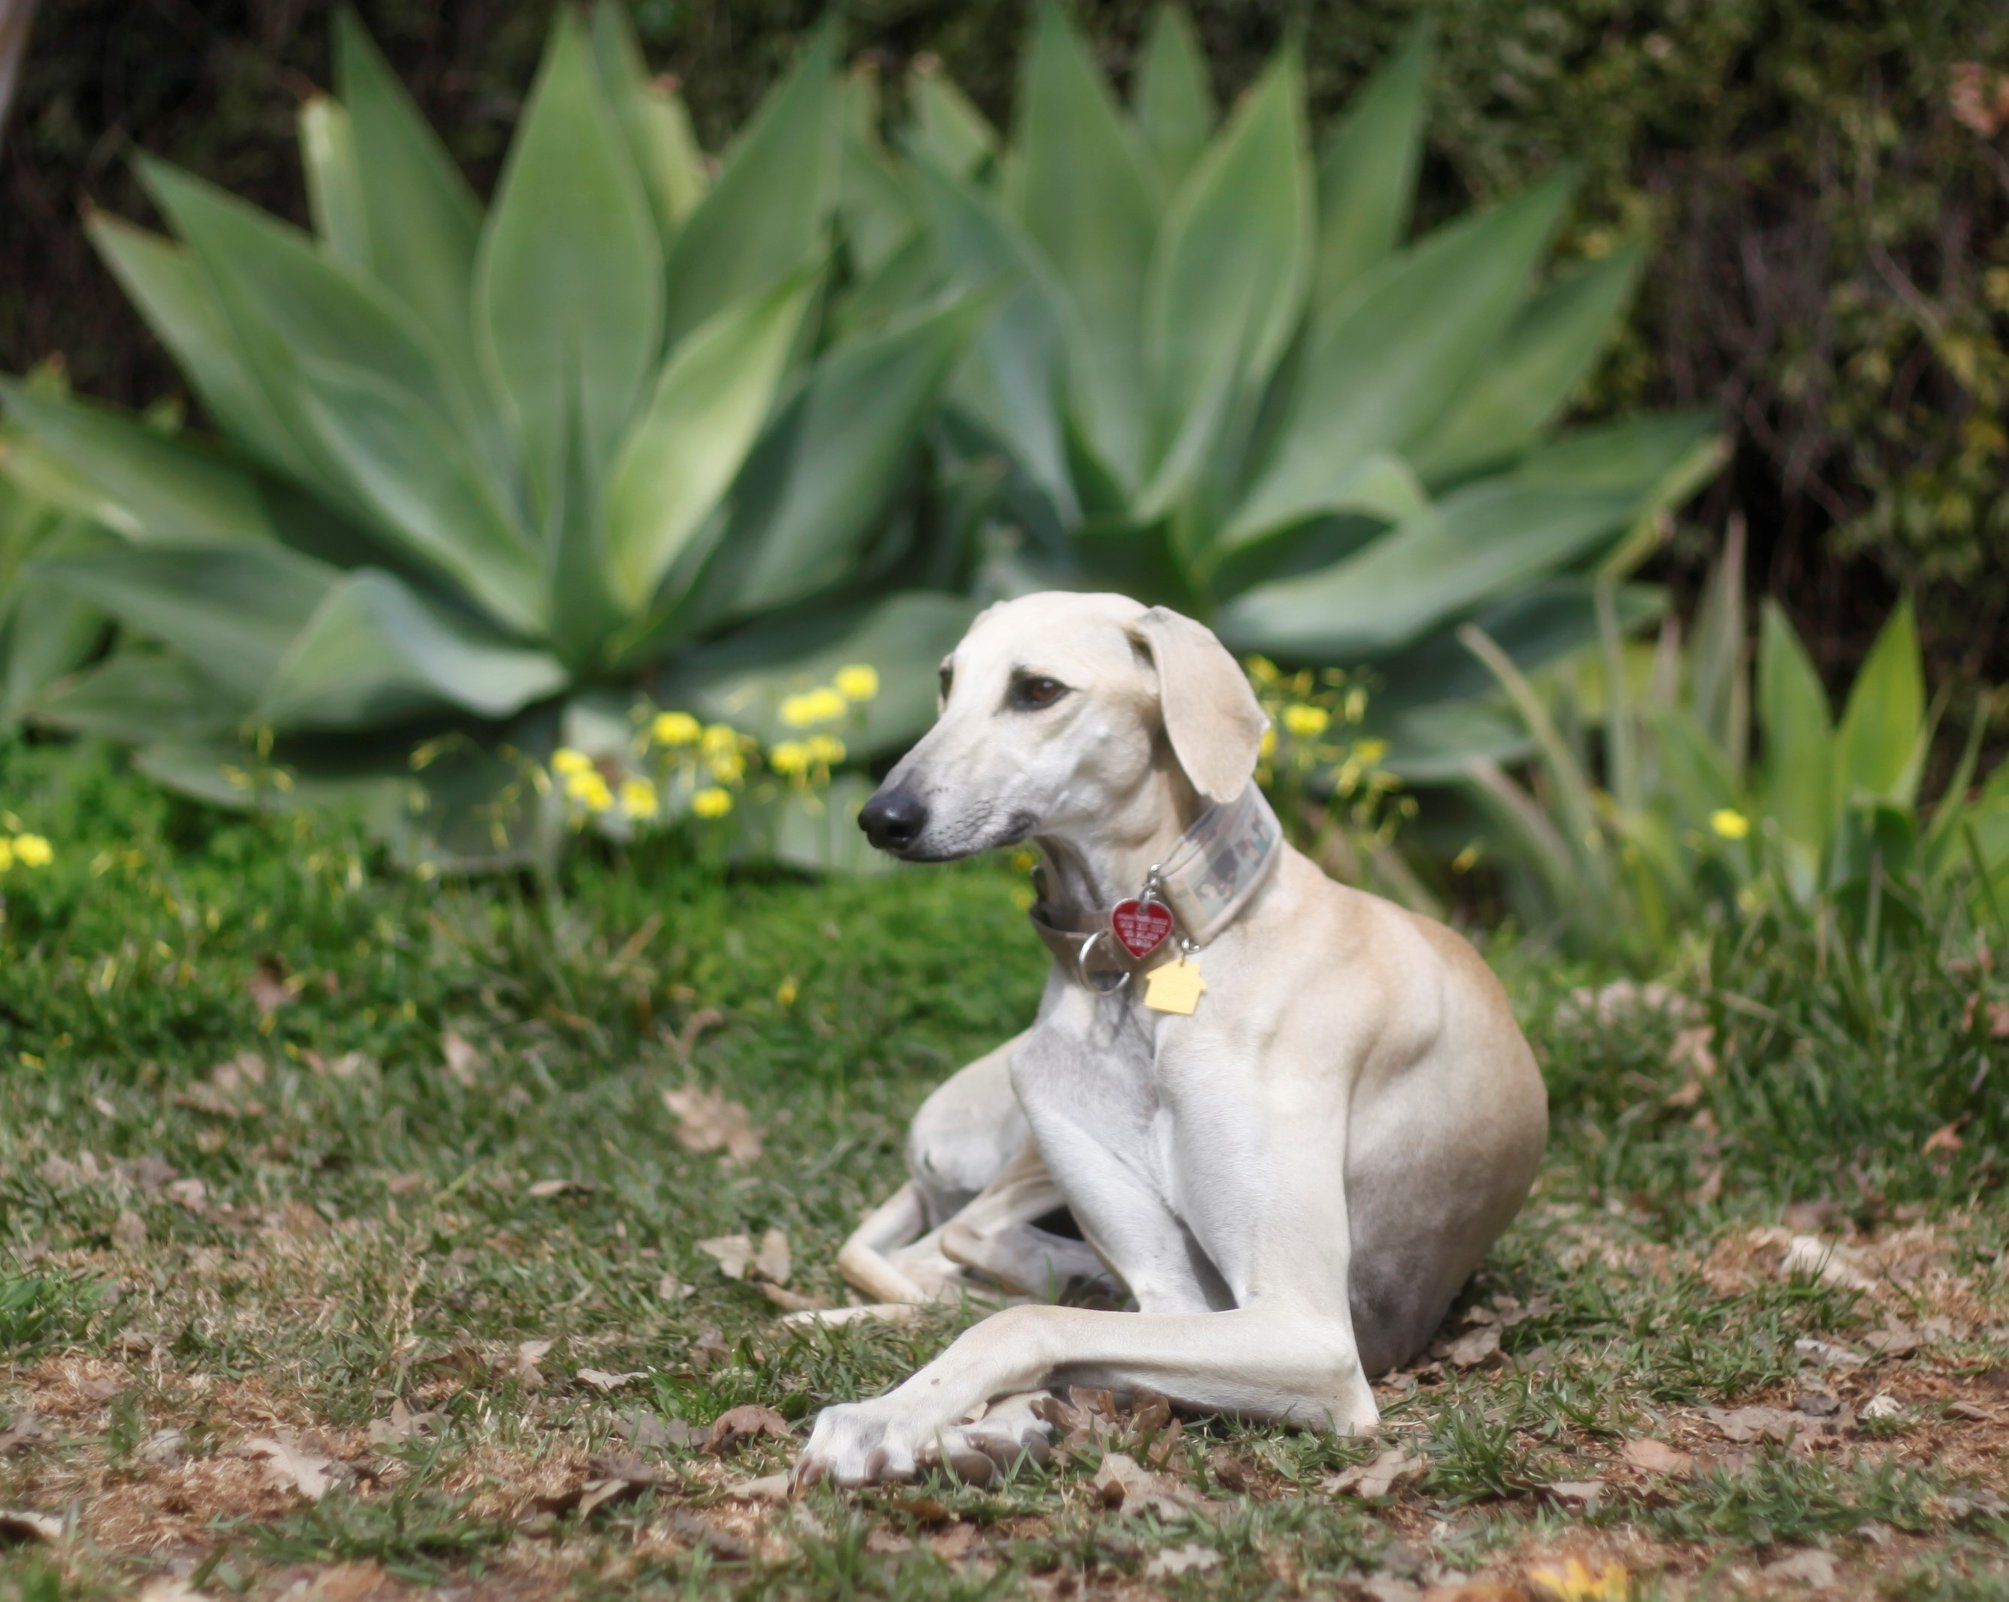 adoptable dogs Archives - Afghan Hound Rescue Afghan Hound